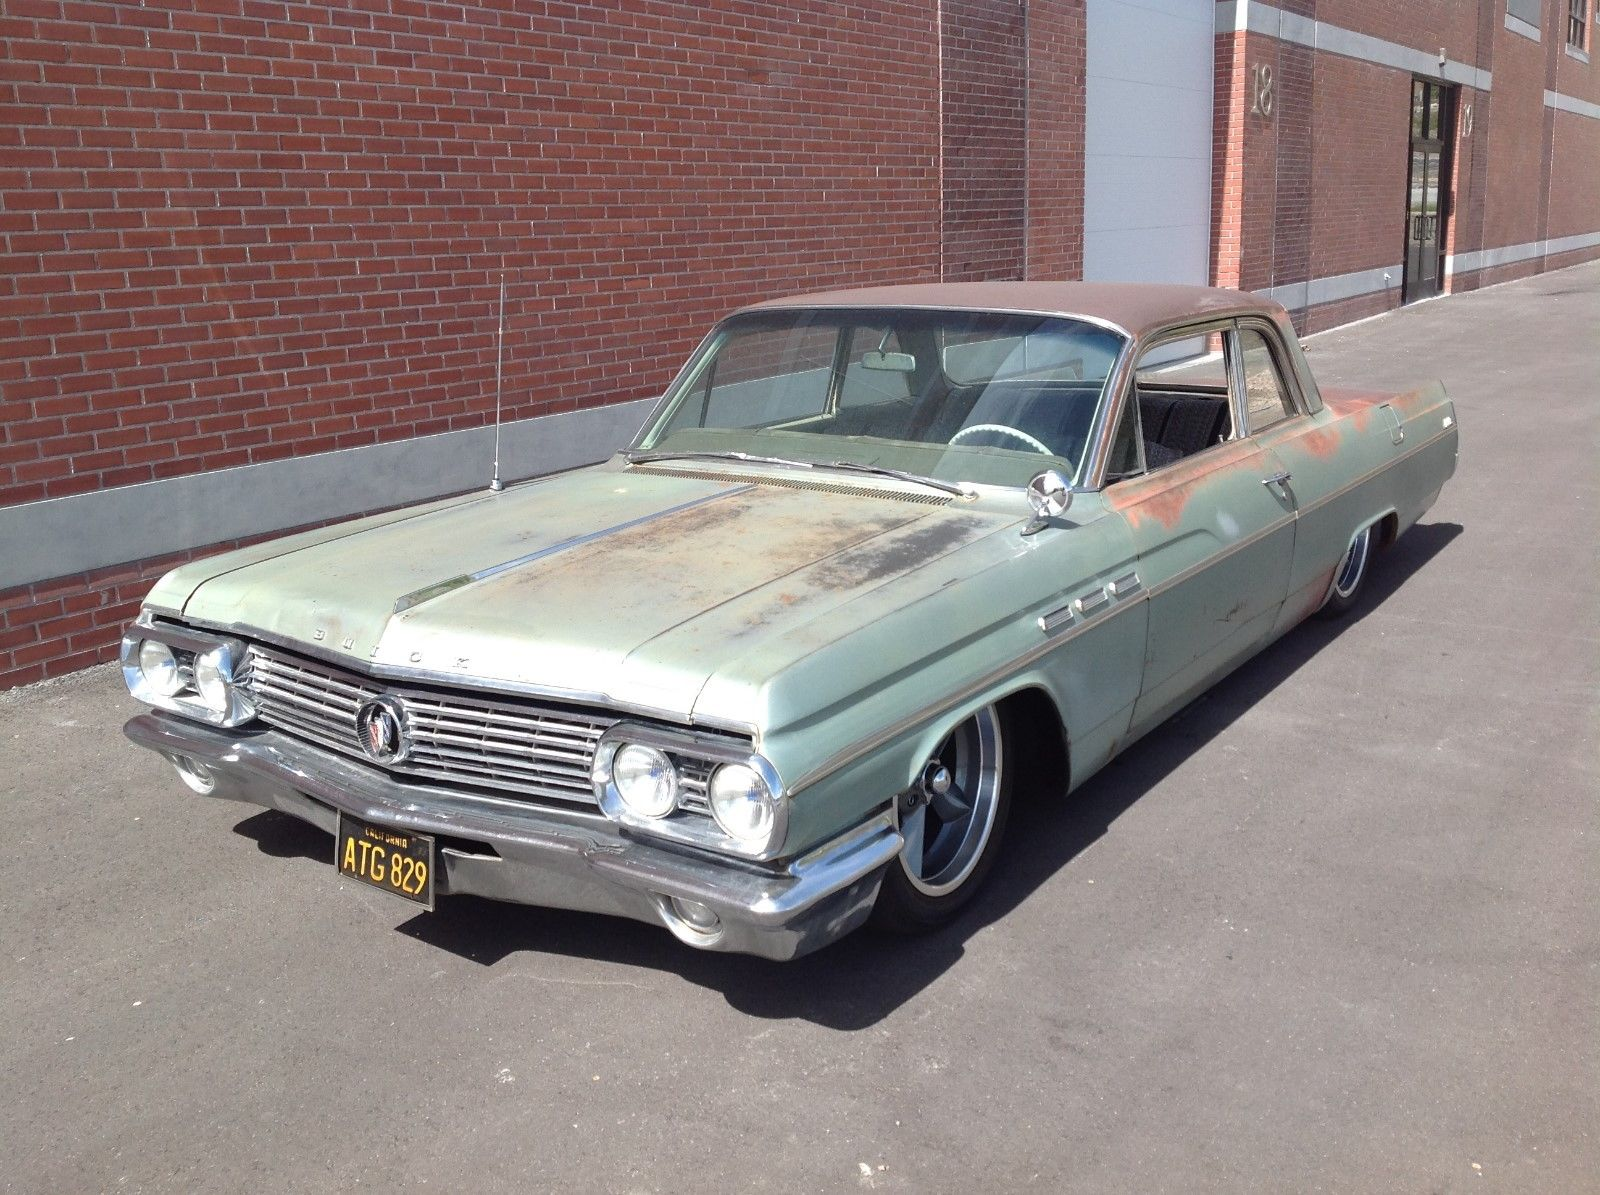 Daily Turismo: Auction Watch: 1963 Buick LeSabre Hot Rod